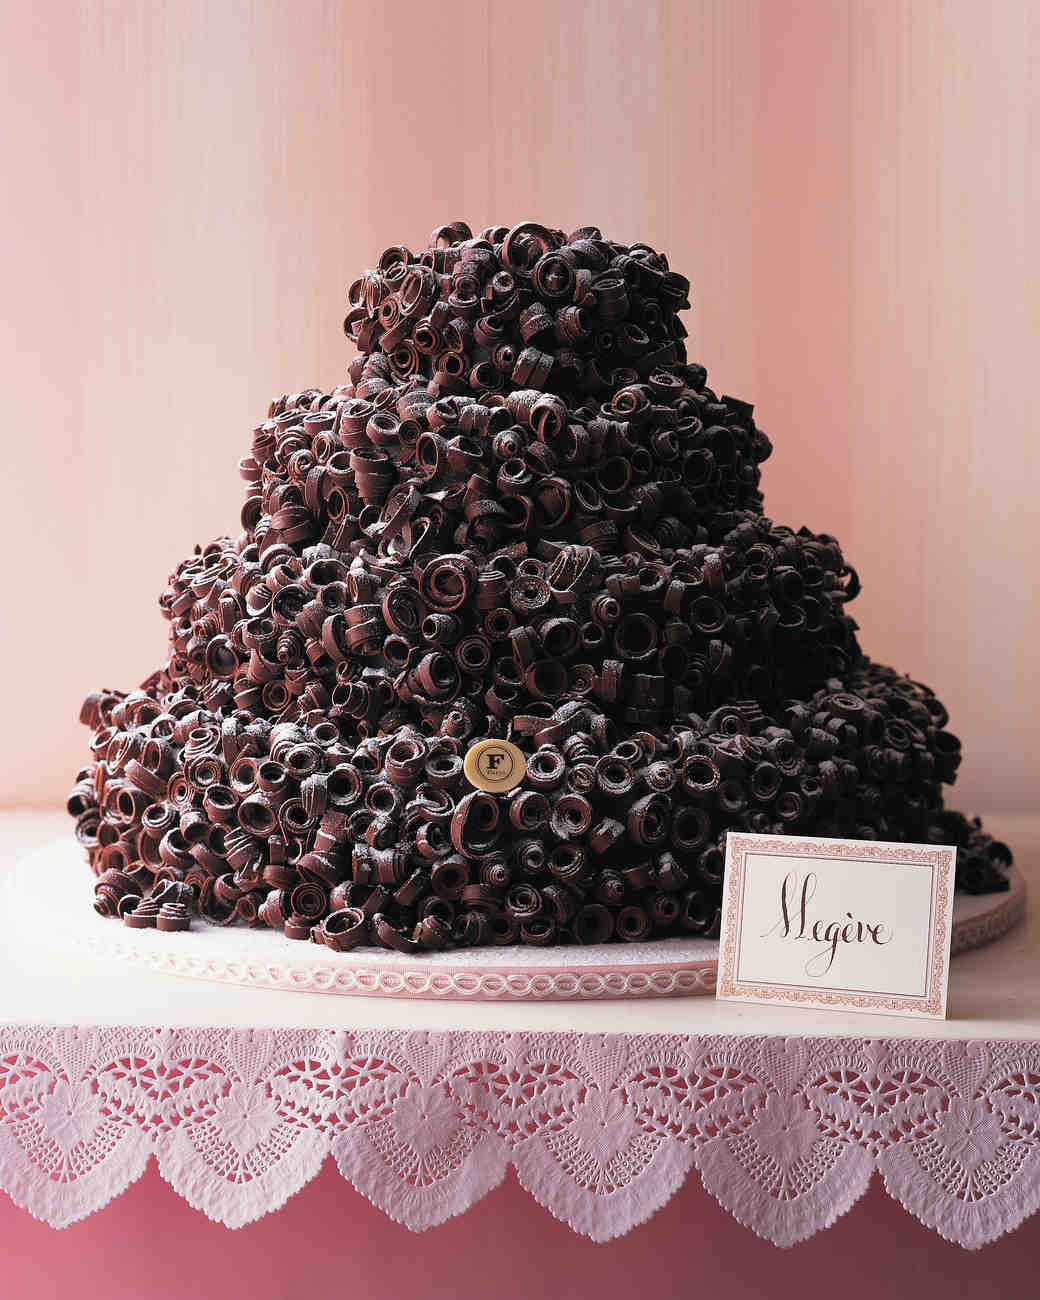 chocolate-cake-ideas-ml397g3-megeve-1114.jpg